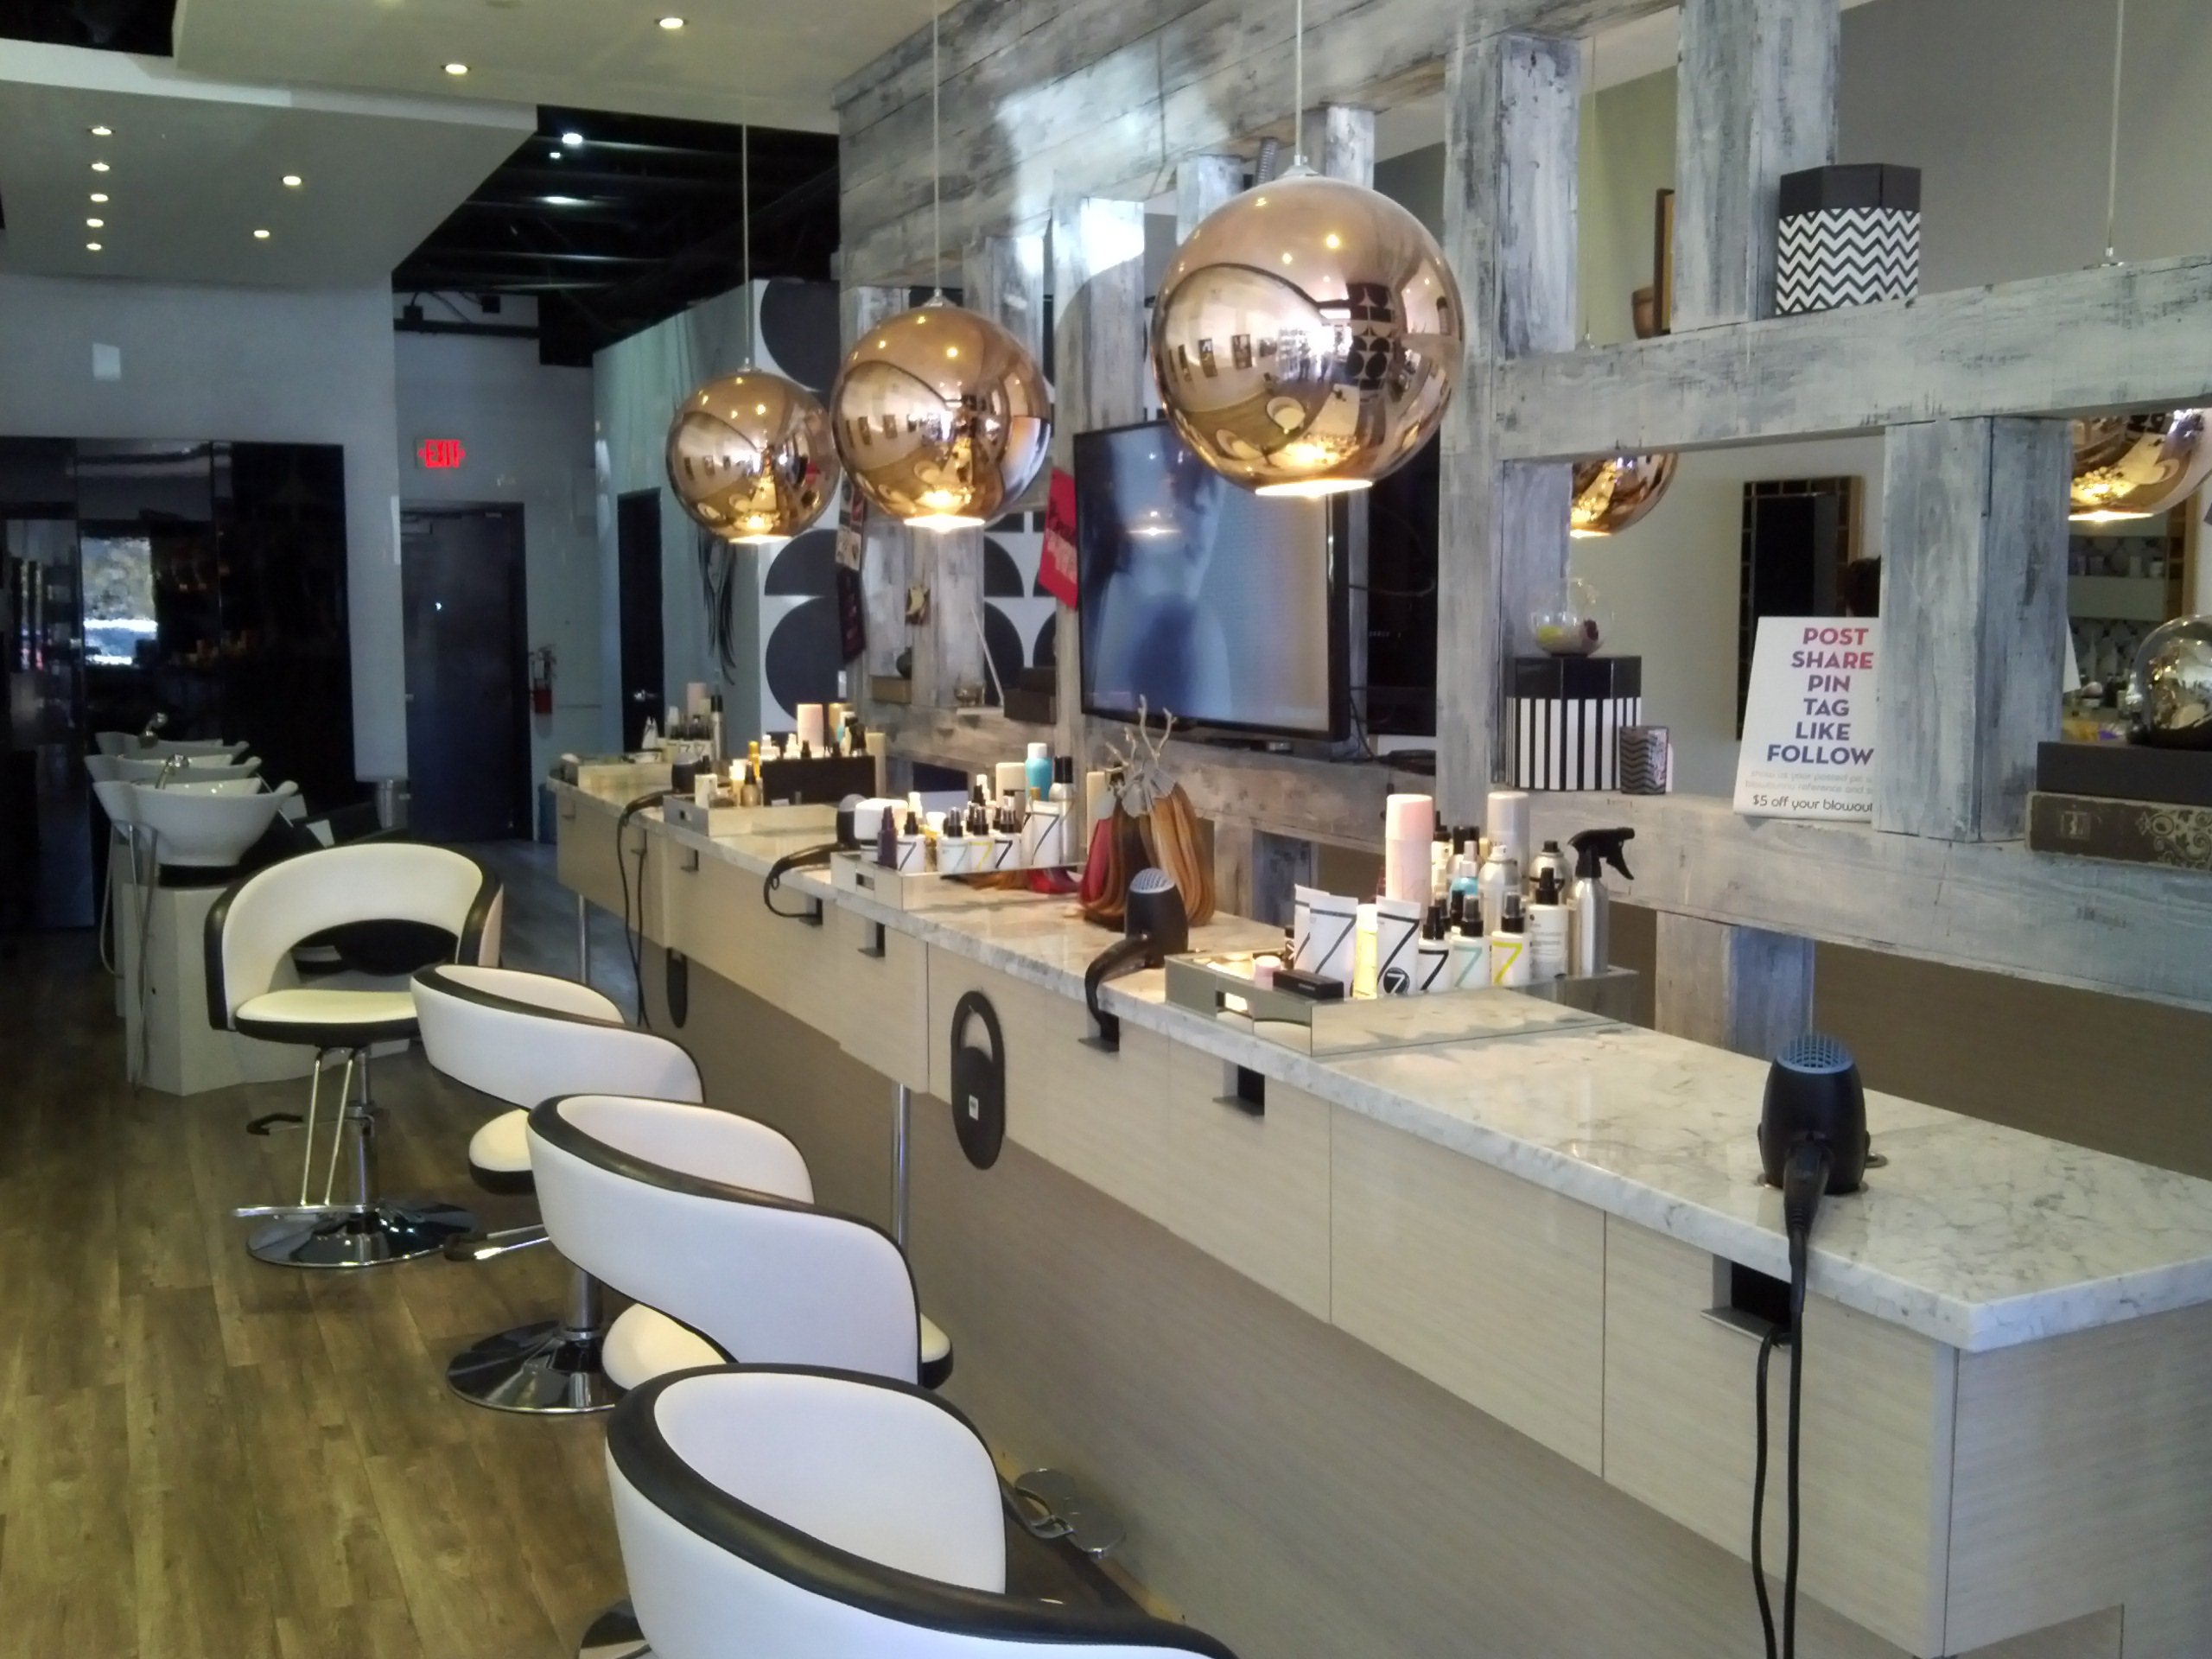 Blowbunny: Blow Dry & Hair Extension Bar image 1